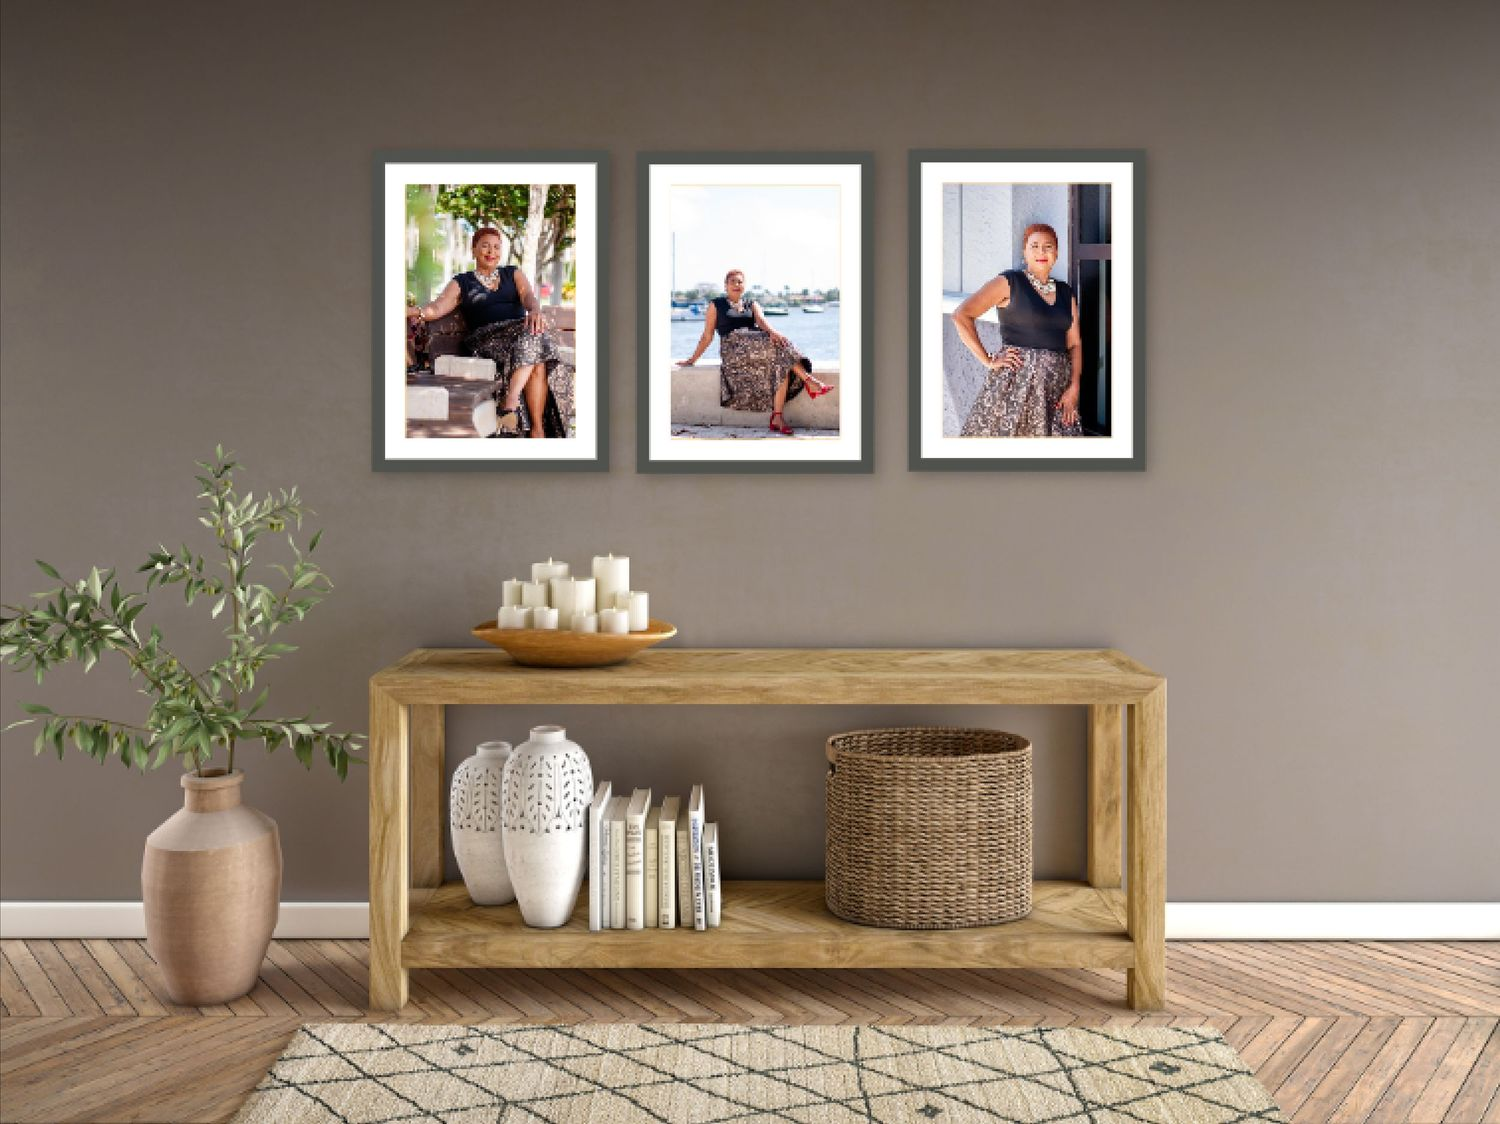 framed wall art design by Palm Beach photographer Photography By Dor